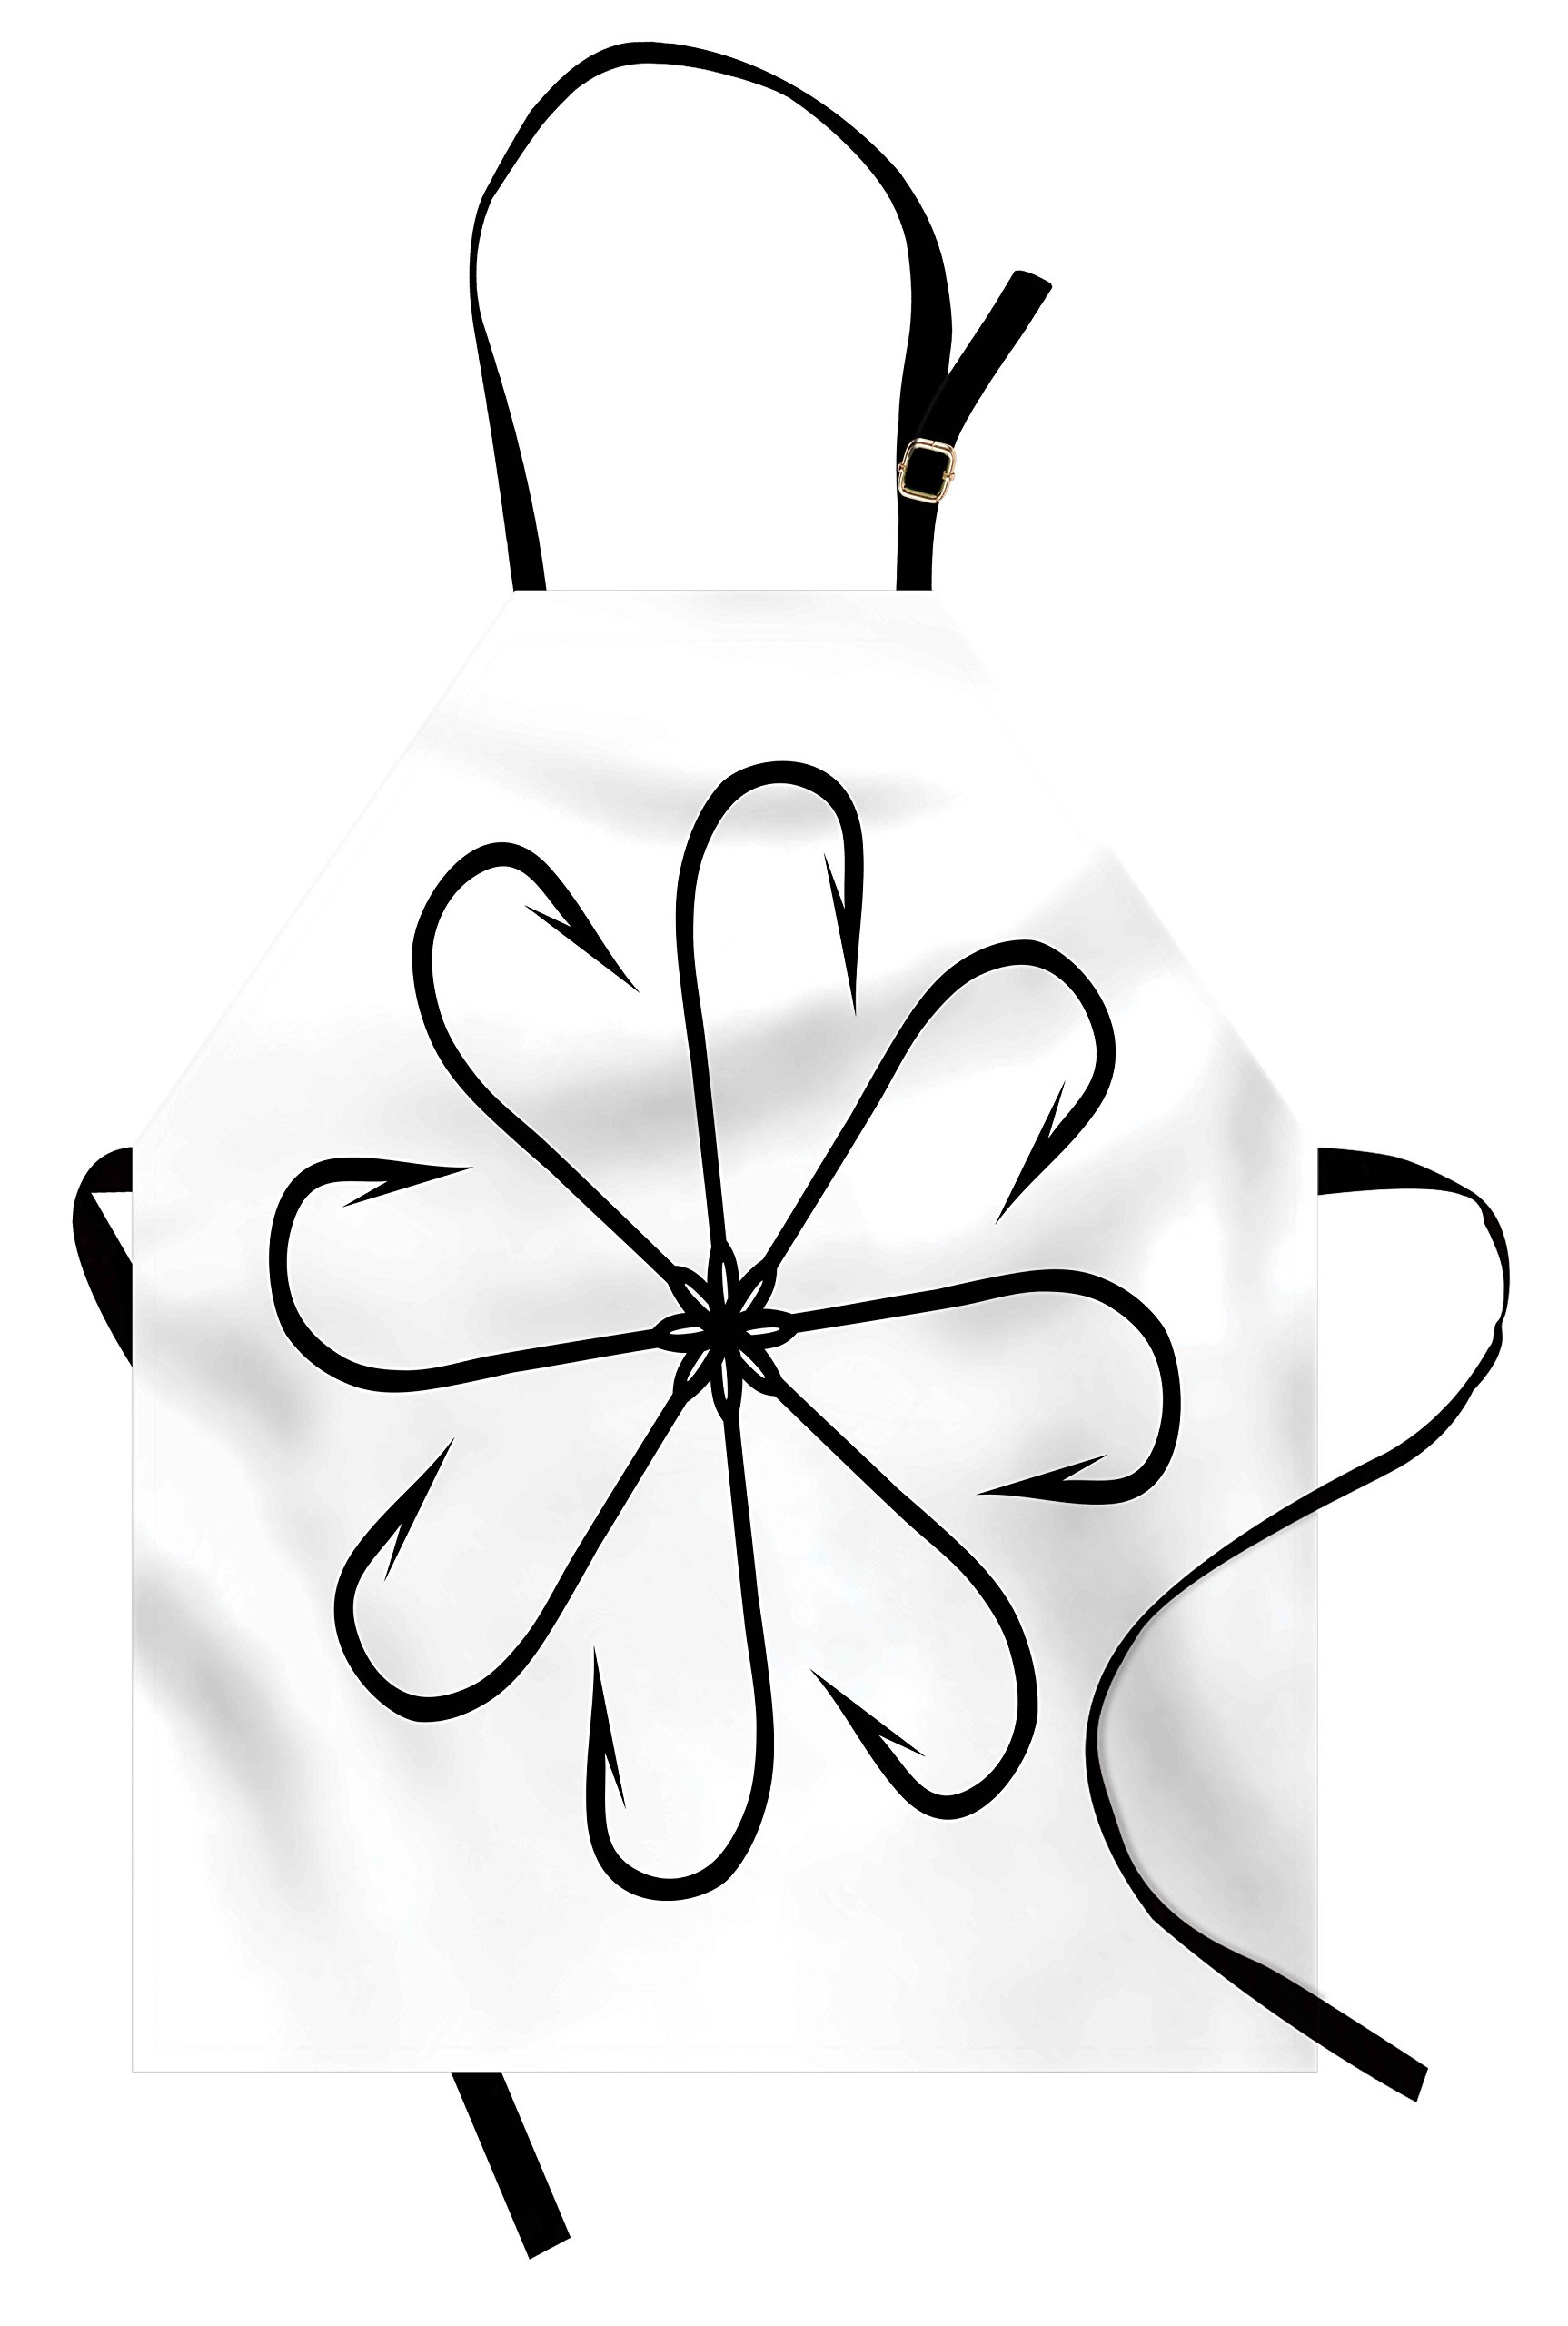 Ambesonne Fishing Apron, Flower Shaped Artisan Steel Multi Hook Gaff in Row New Needle Device Figure Print, Unisex Kitchen Bib Apron with Adjustable Neck for Cooking Baking Gardening, Black White